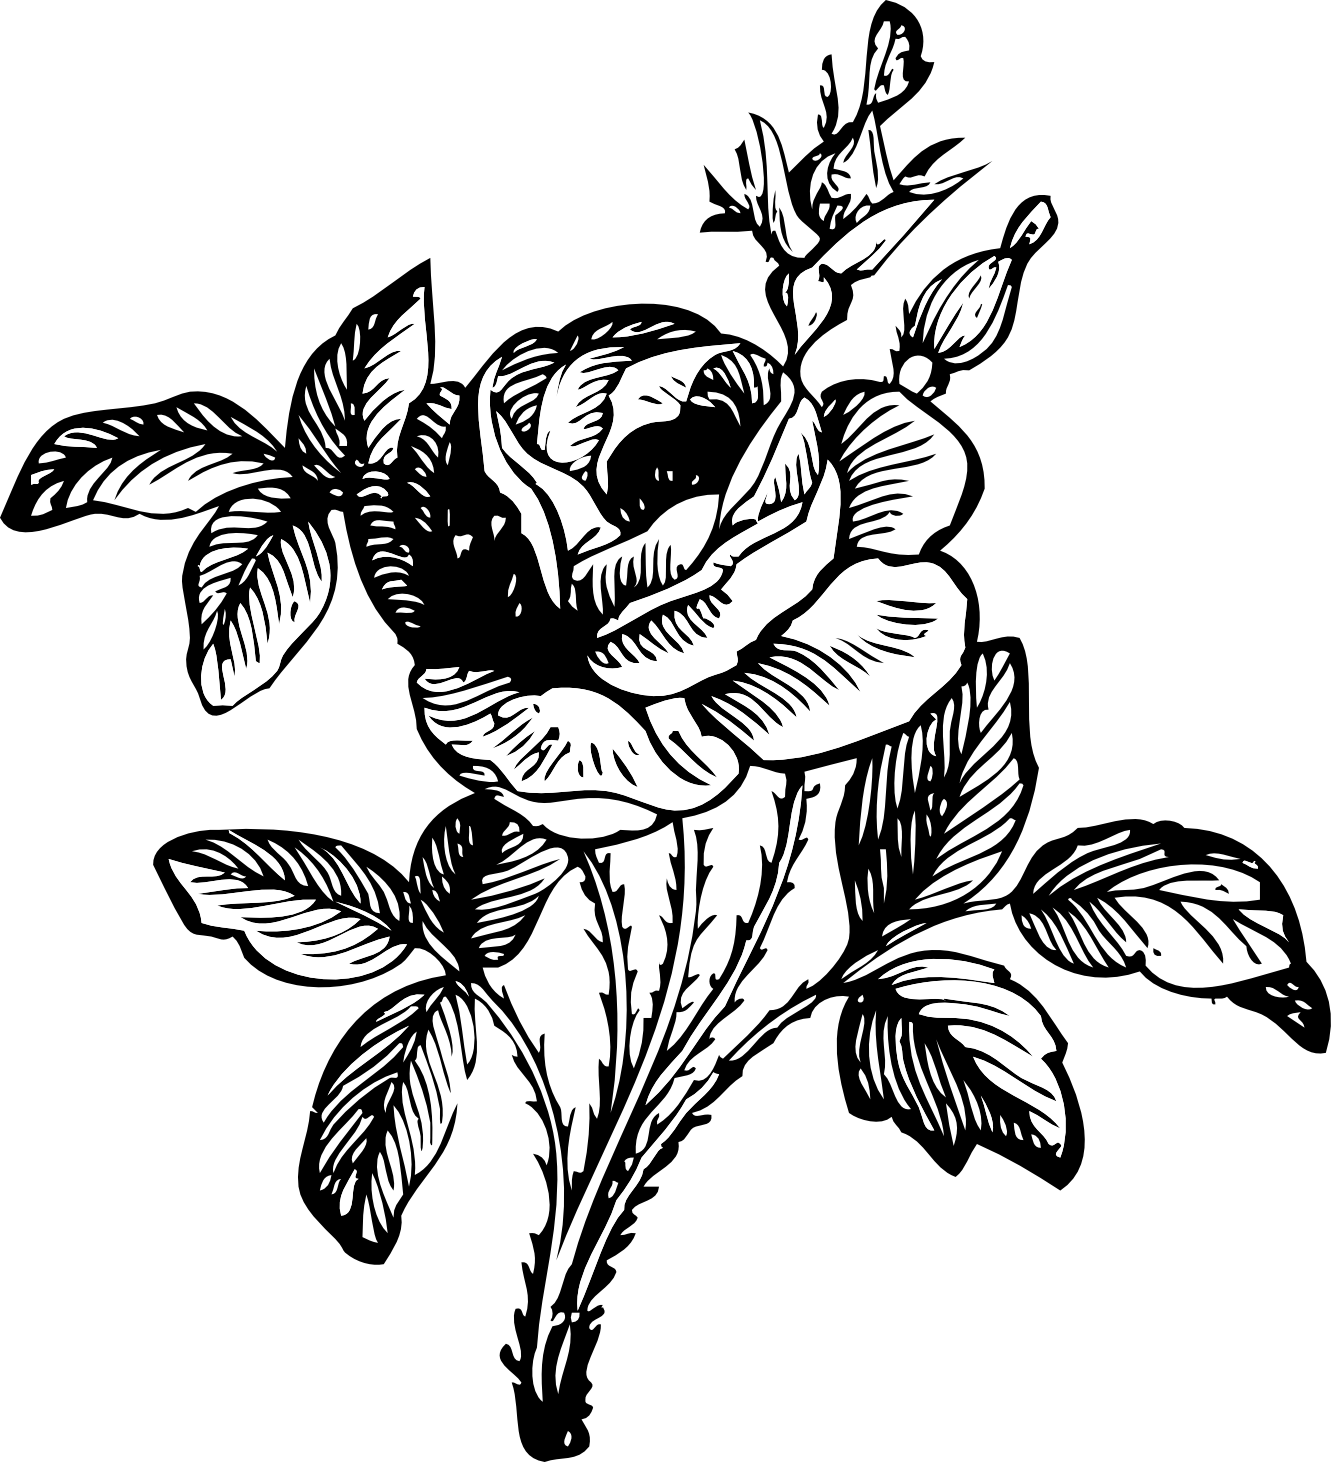 Rose flower clipart black and white clip art library download Flower Bouquet Clipart Black And White | Clipart Panda - Free ... clip art library download